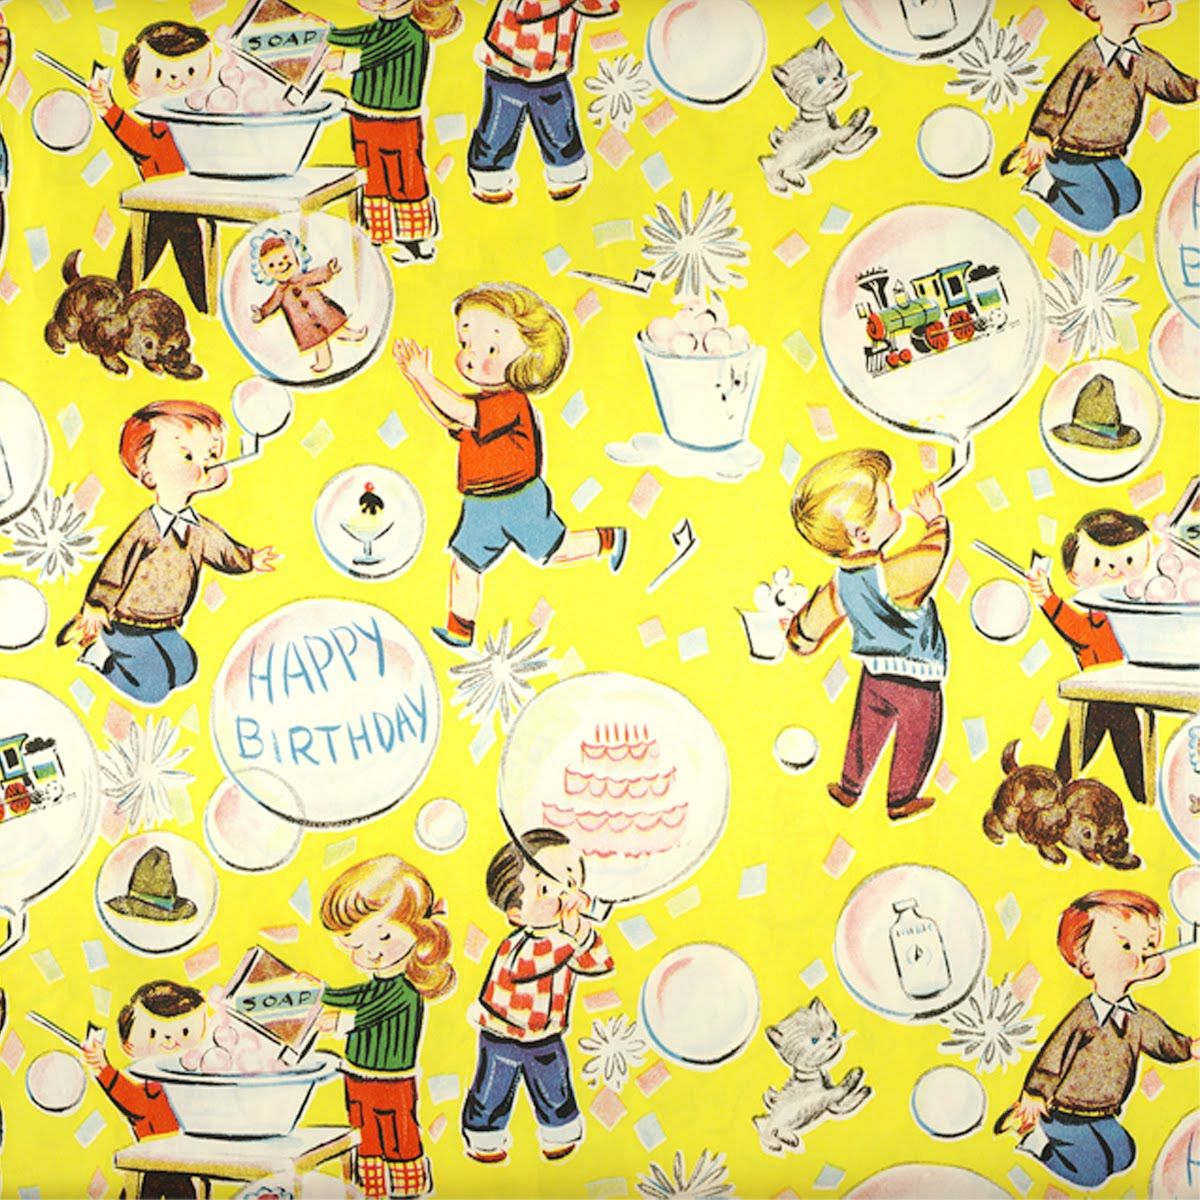 Prettie Vintage Wrapping Paper Birthday Wrapping Paper Vintage Wrapping Paper Vintage Birthday Cards